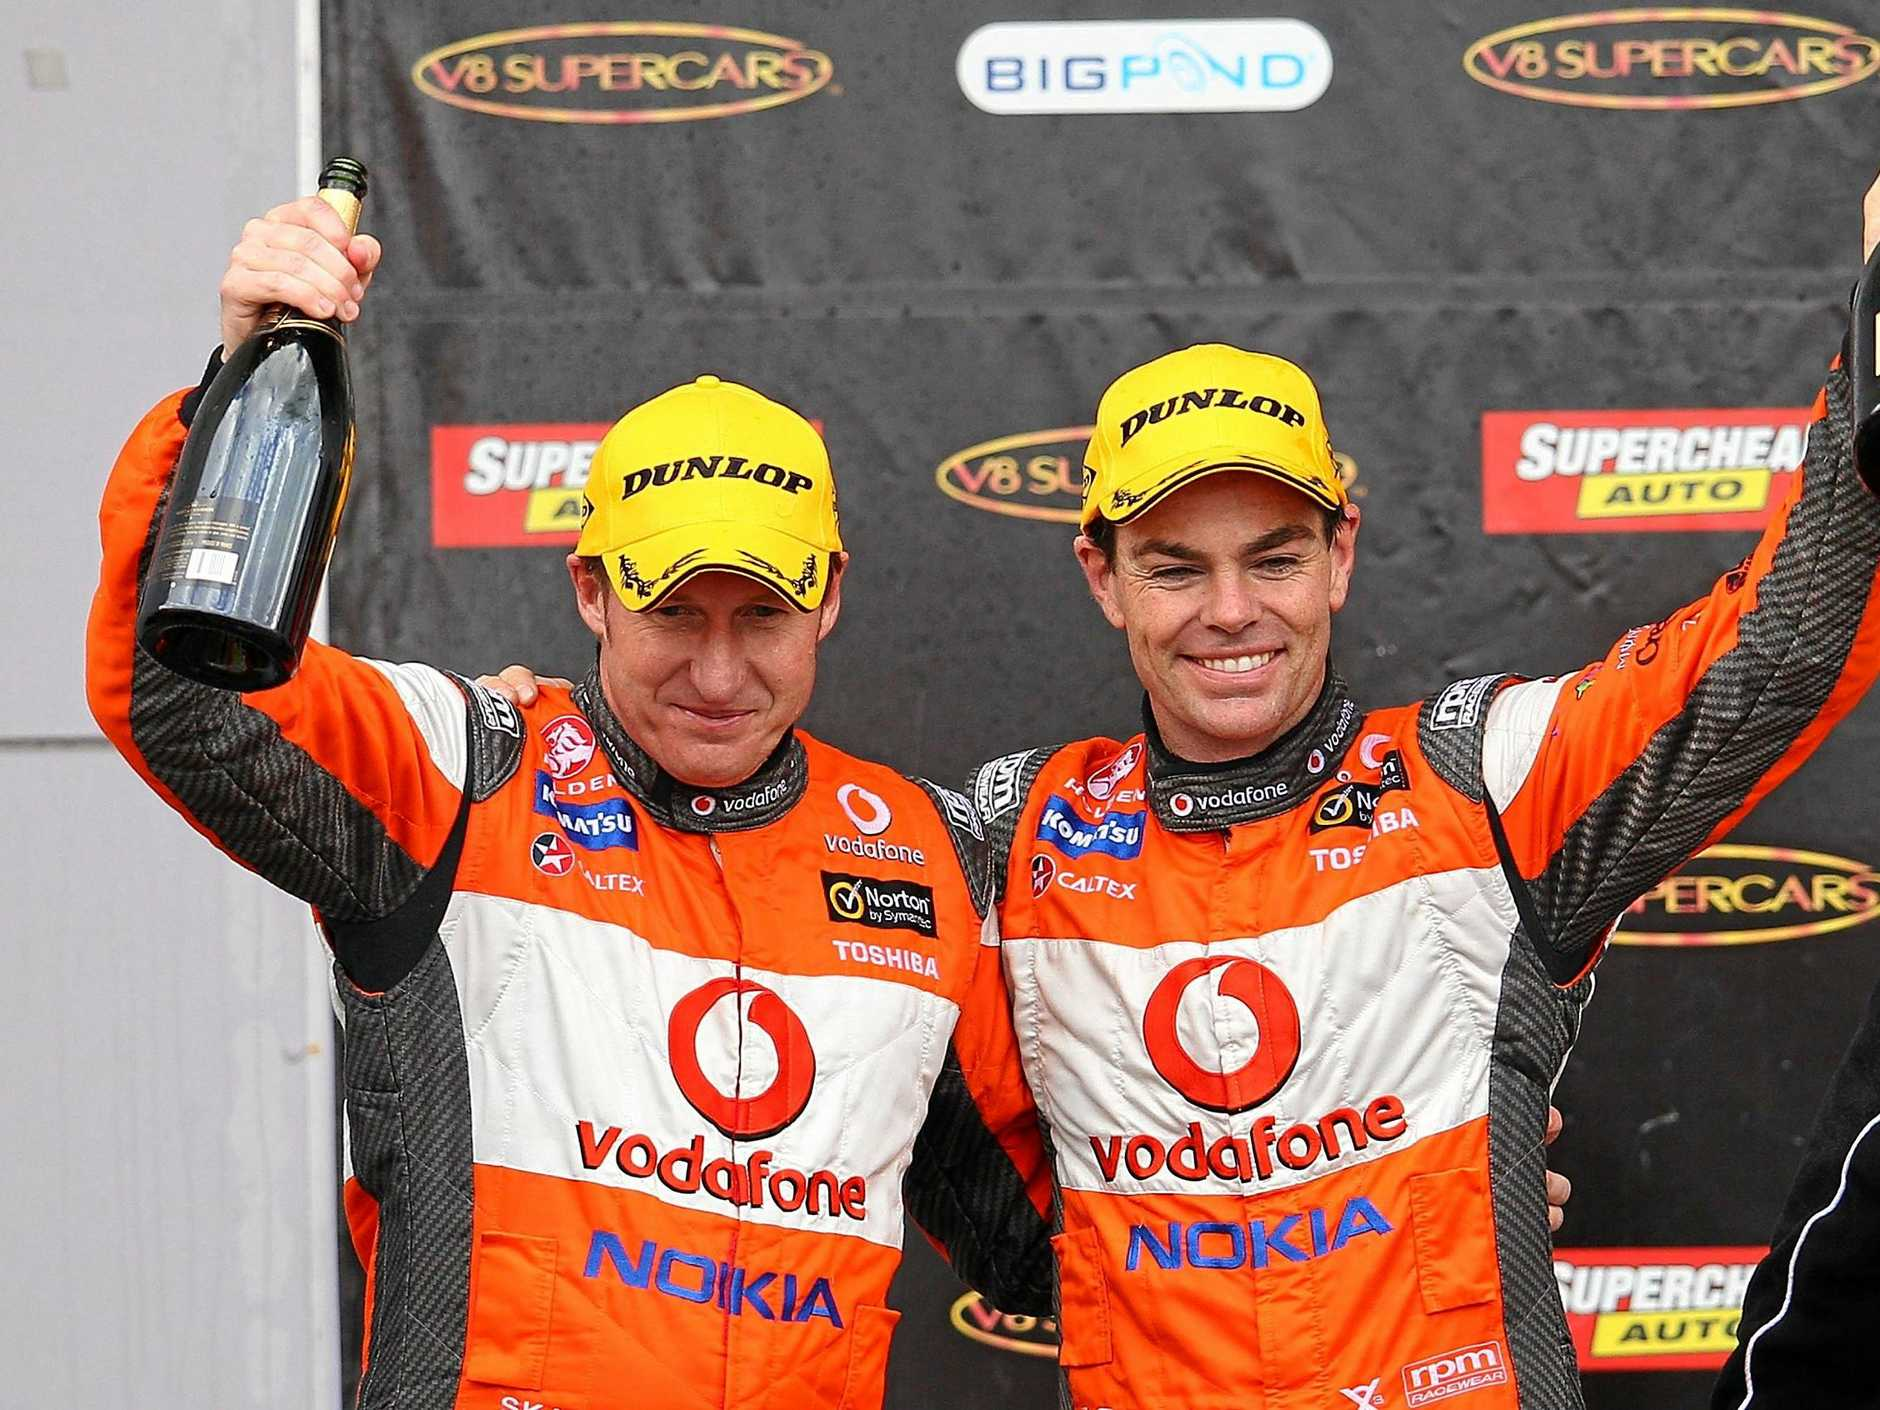 BATHURST, AUSTRALIA - OCTOBER 09:  Mark Skaife and Craig Lowndes drivers of the #888 Team Vodafone Holden celebrate on the podium after finishing second after the Bathurst 1000, which is round 10 of the V8 Supercars Championship Series at Mount Panorama on October 9, 2011 in Bathurst, Australia.  (Photo by Matt Blyth/Getty Images)